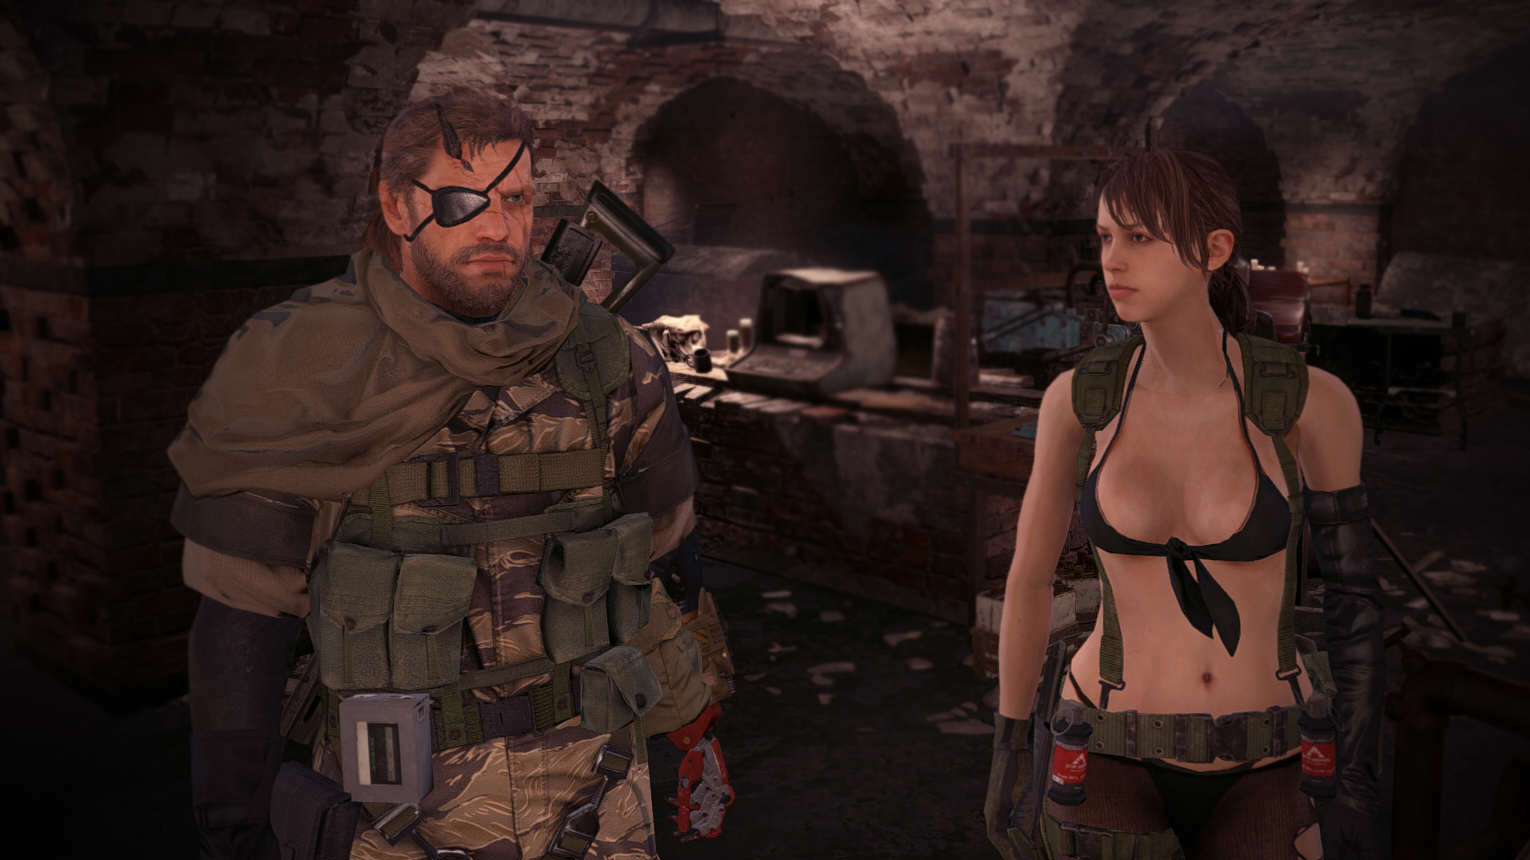 Fallout 4 And Metal Gear Solid V Collide In New Mod 3001209 8841 0 1454017555